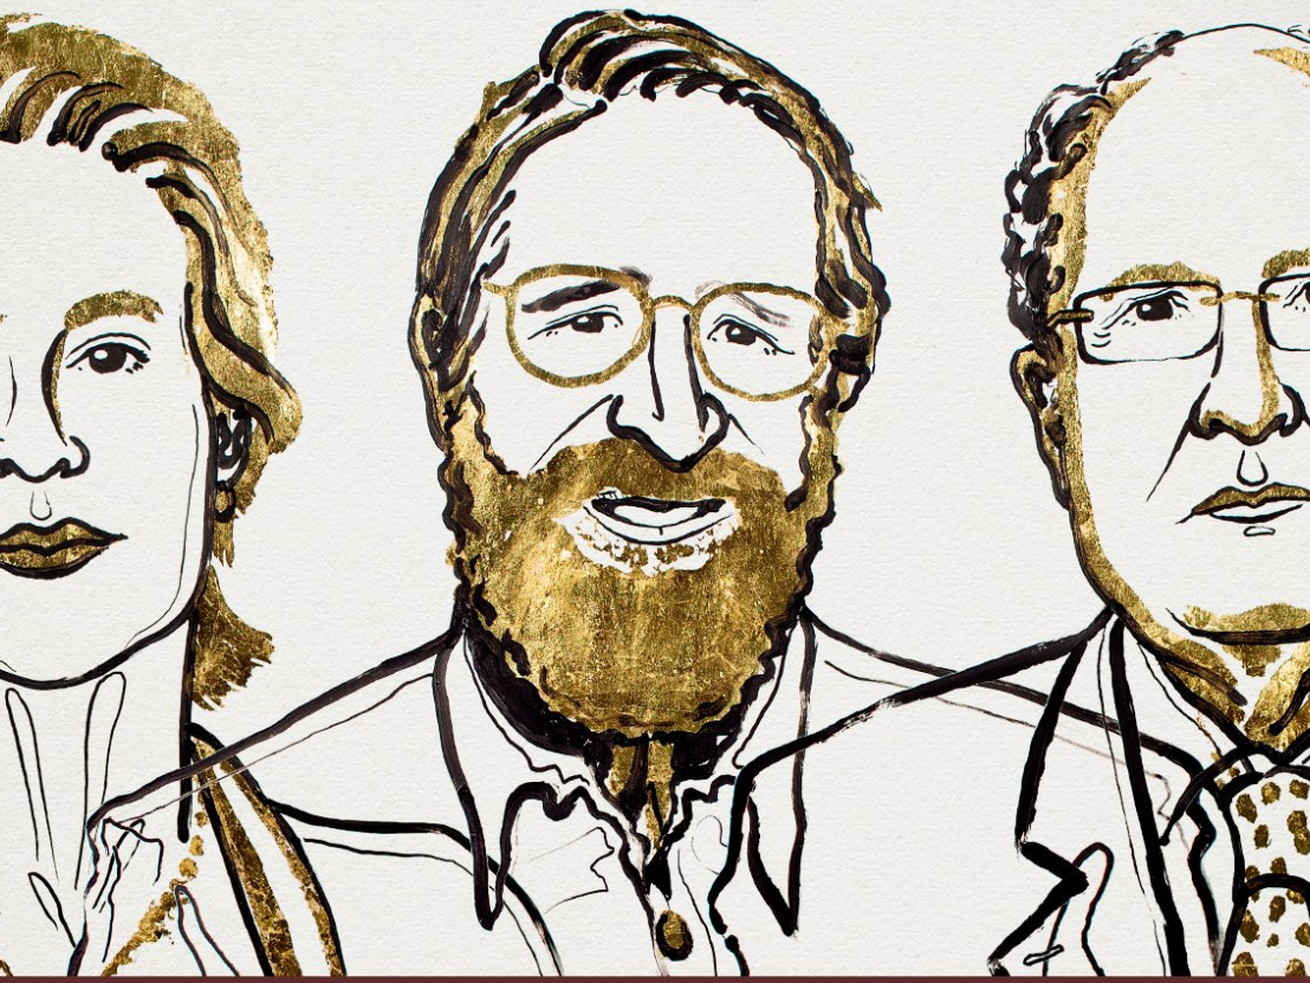 The 2018 Nobel Laureates in chemistry are Frances H Arnold, George P Smith, and Gregory P. Winter.